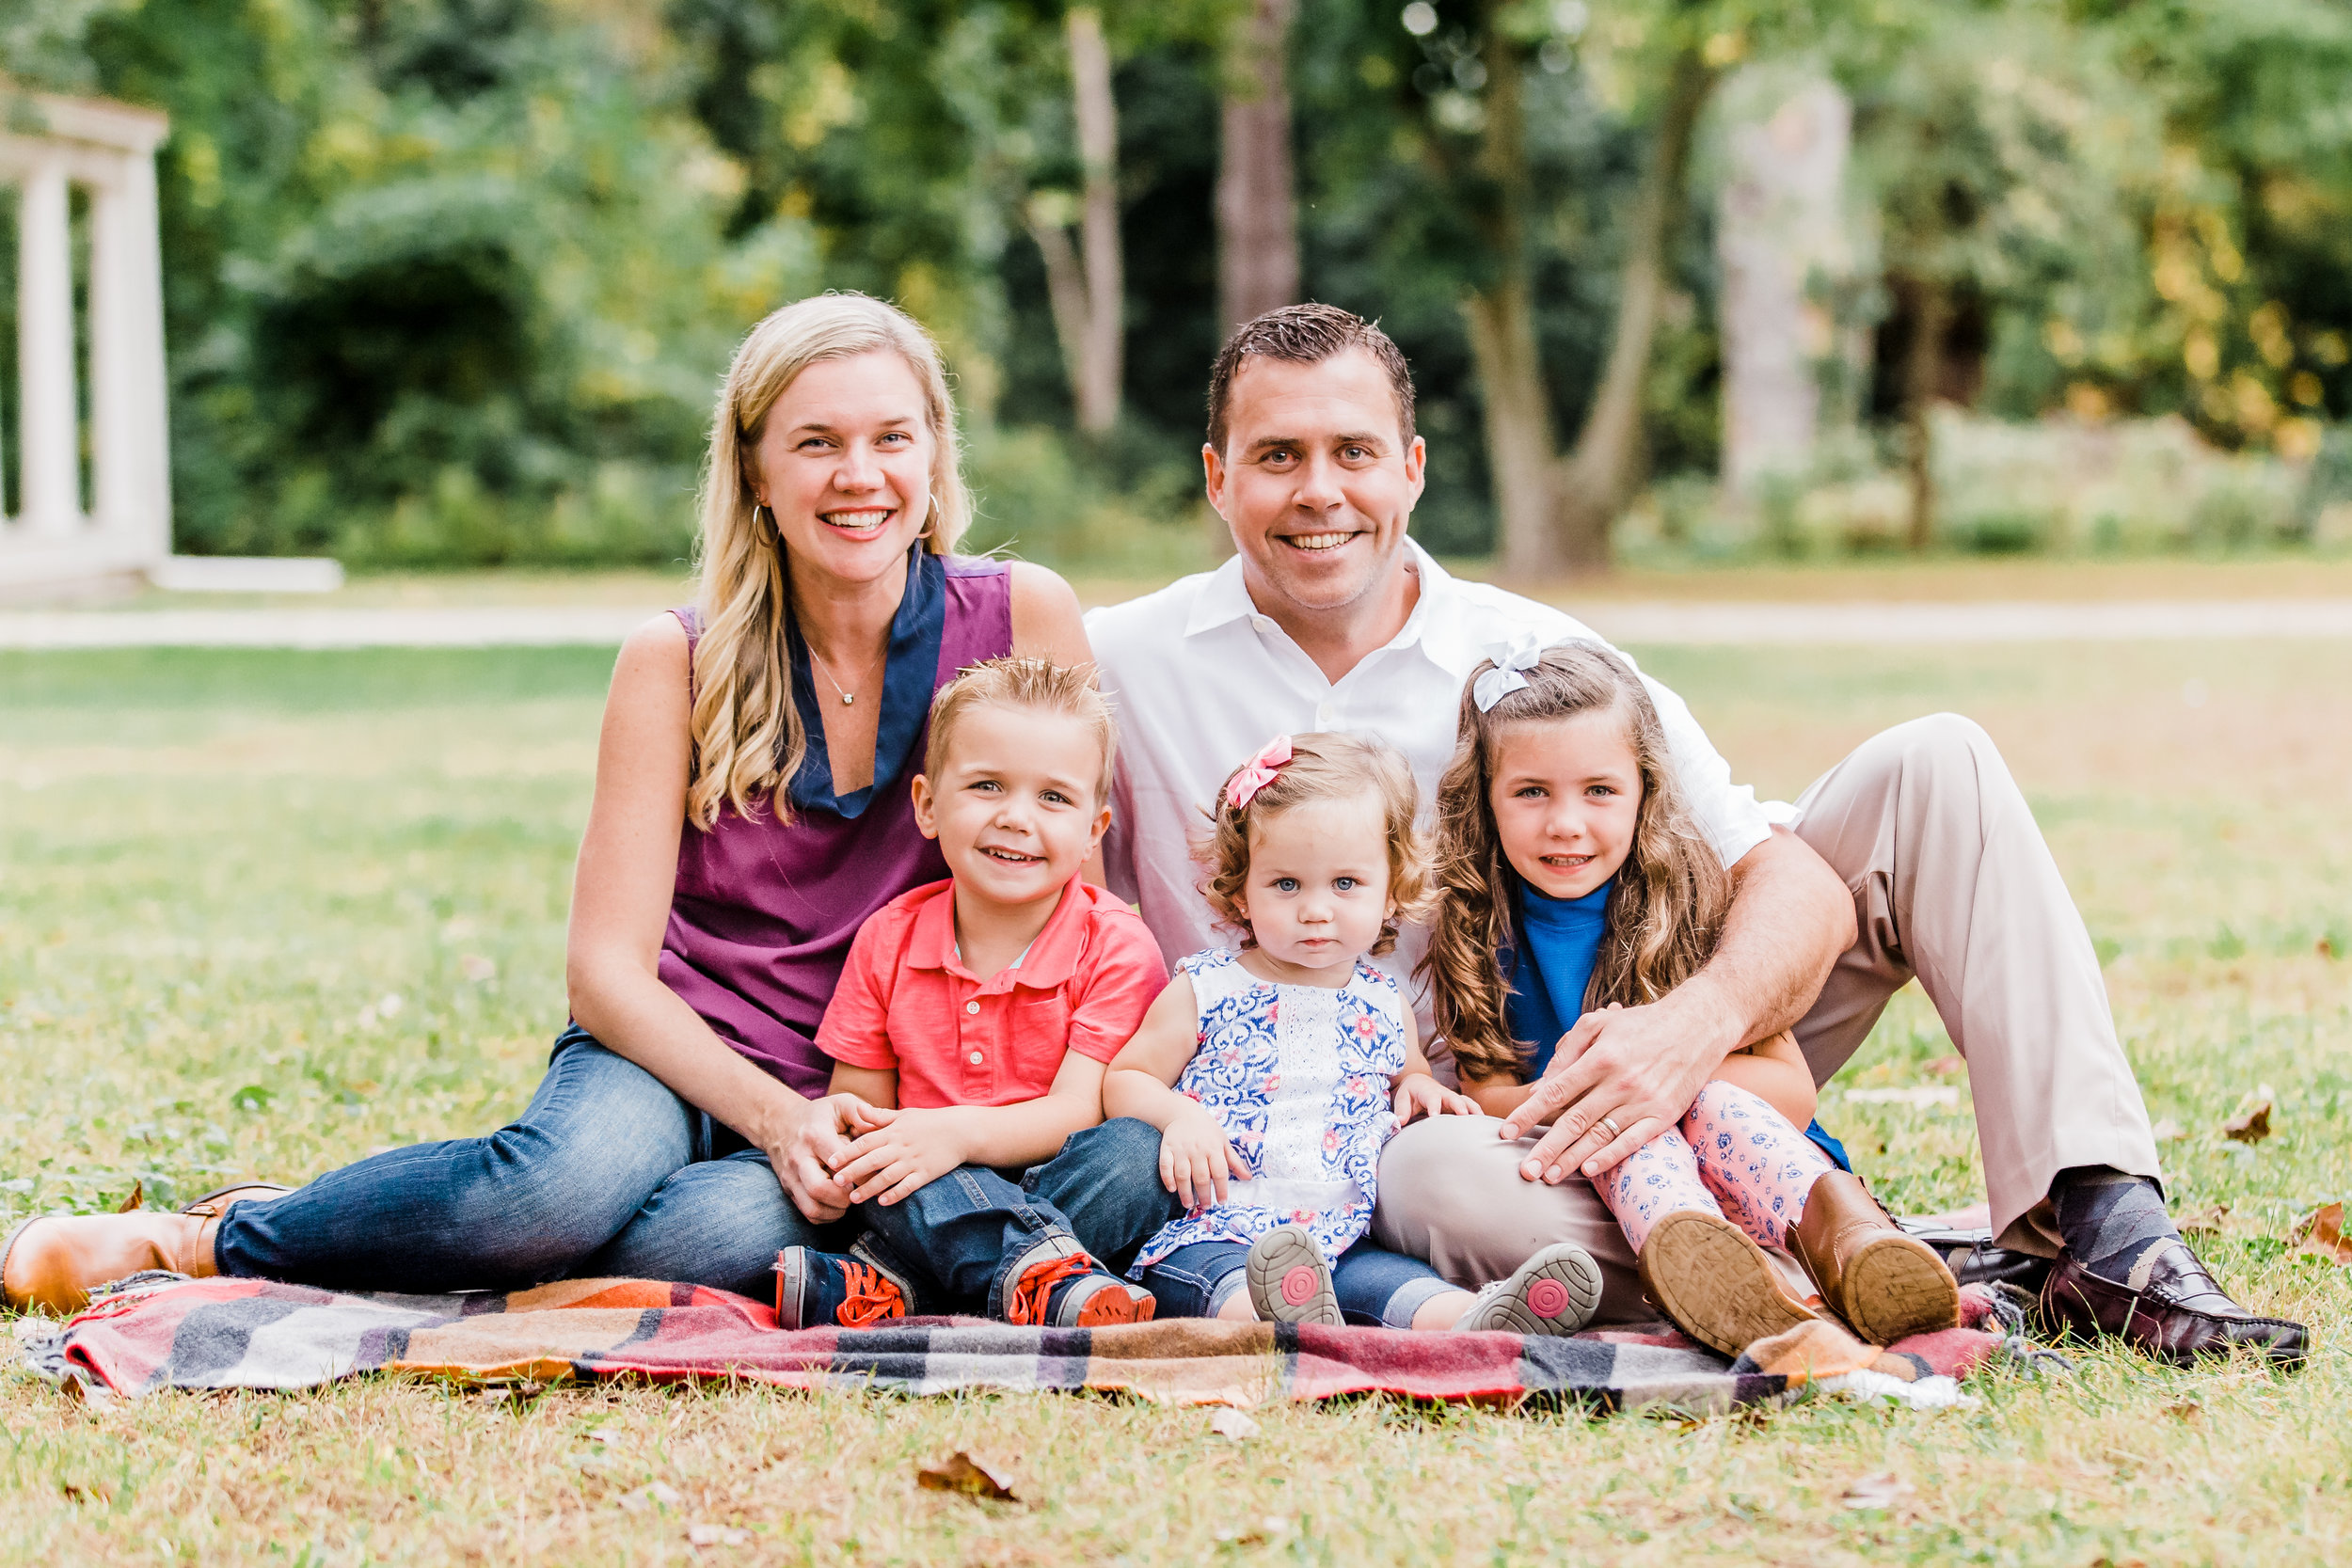 SMP_Kelly ONeil Family_Oct 2017-13.jpg